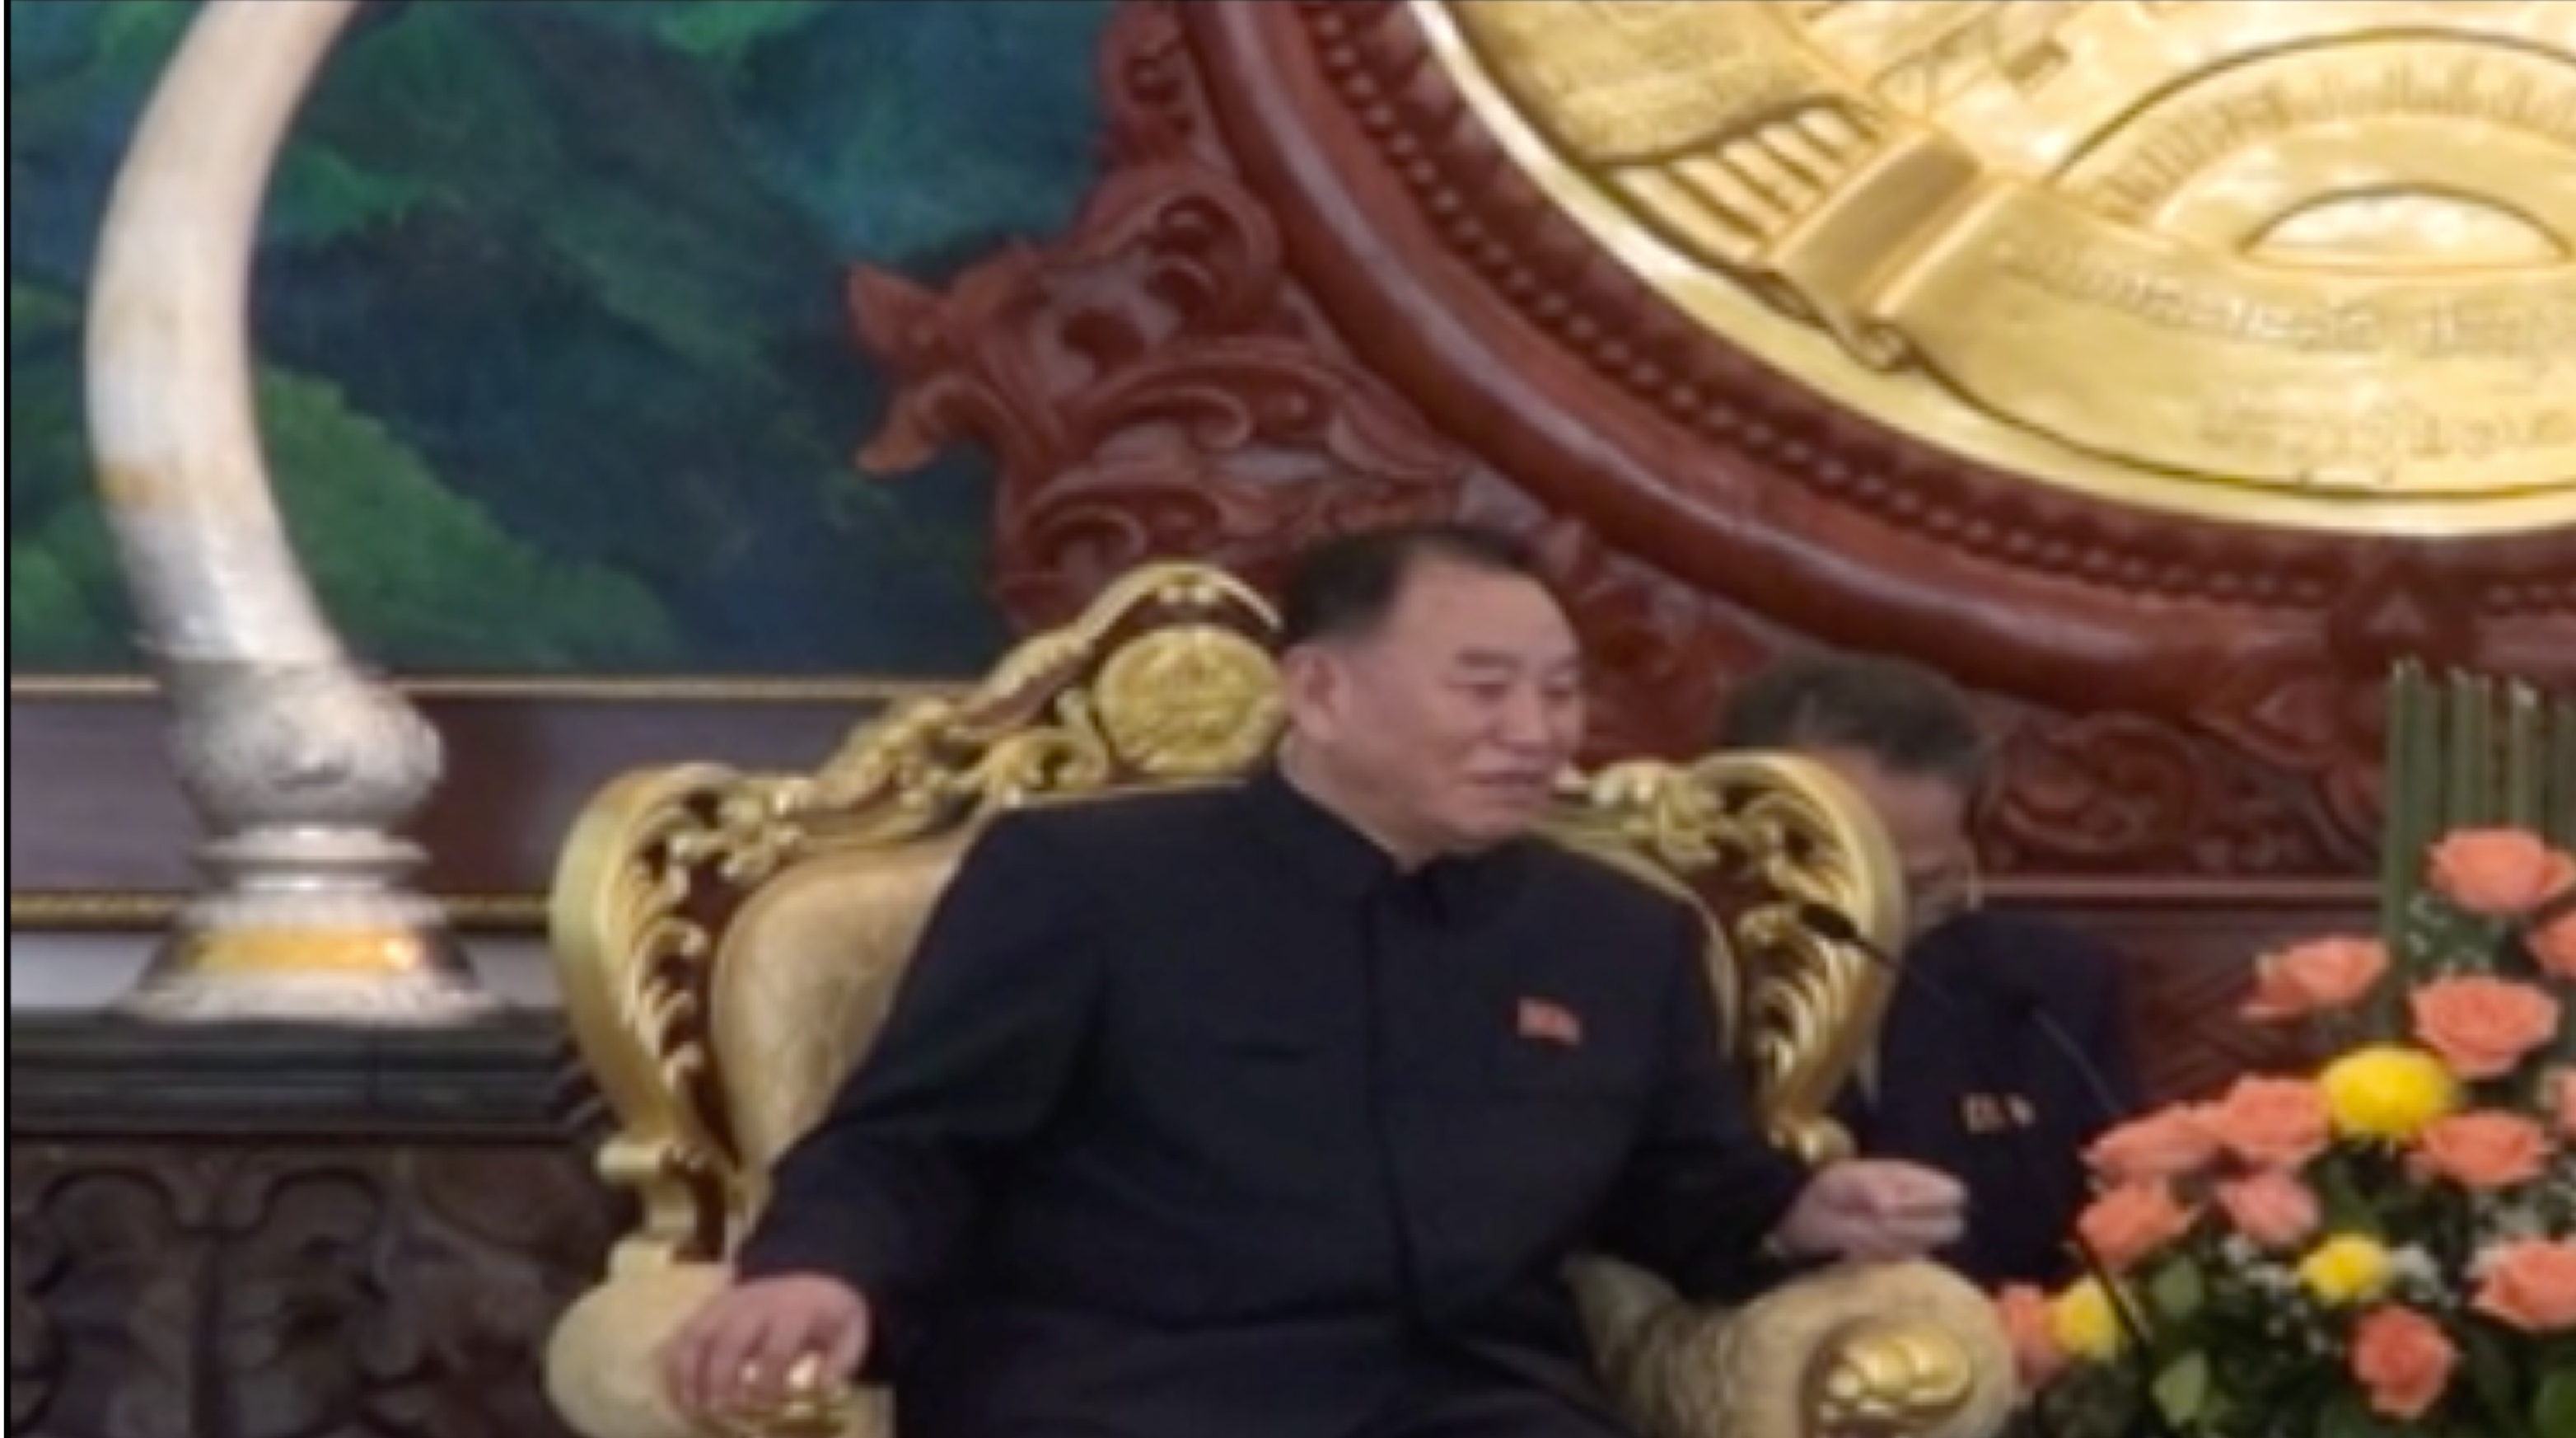 WPK Secretary Kim Yong Chol meets with Lao Predient Choummaly Sayasone in Vientiane on February 12, 2016 (Photo: KPL video screengrab).